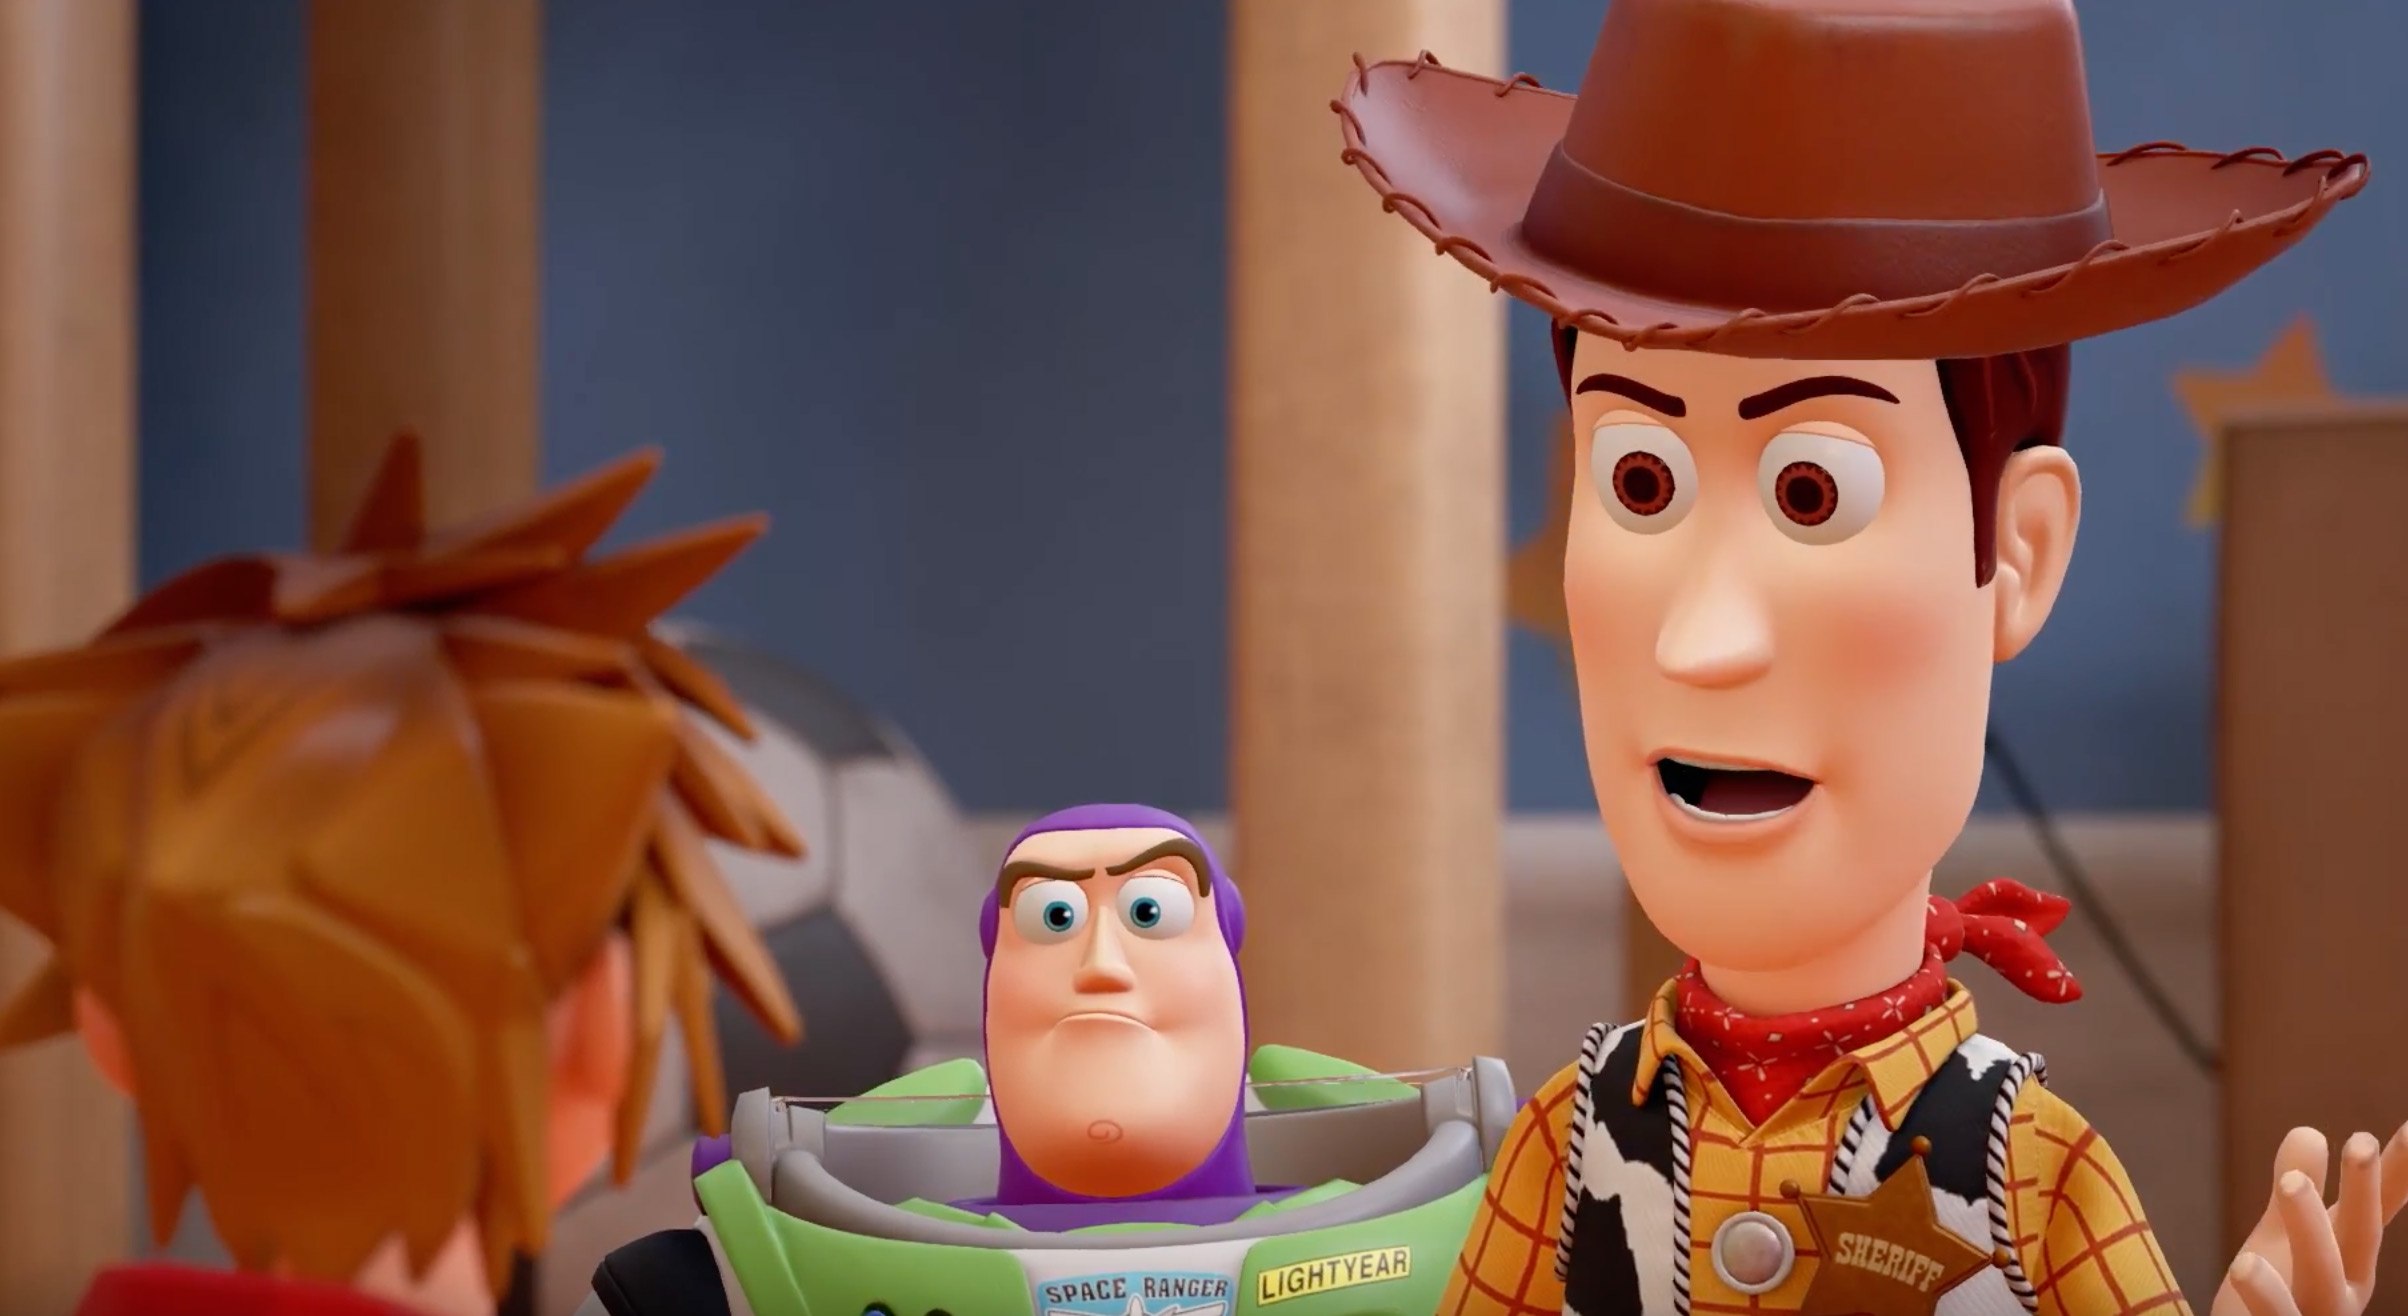 Sora will become Andy's plaything in Kingdom Hearts III screenshot